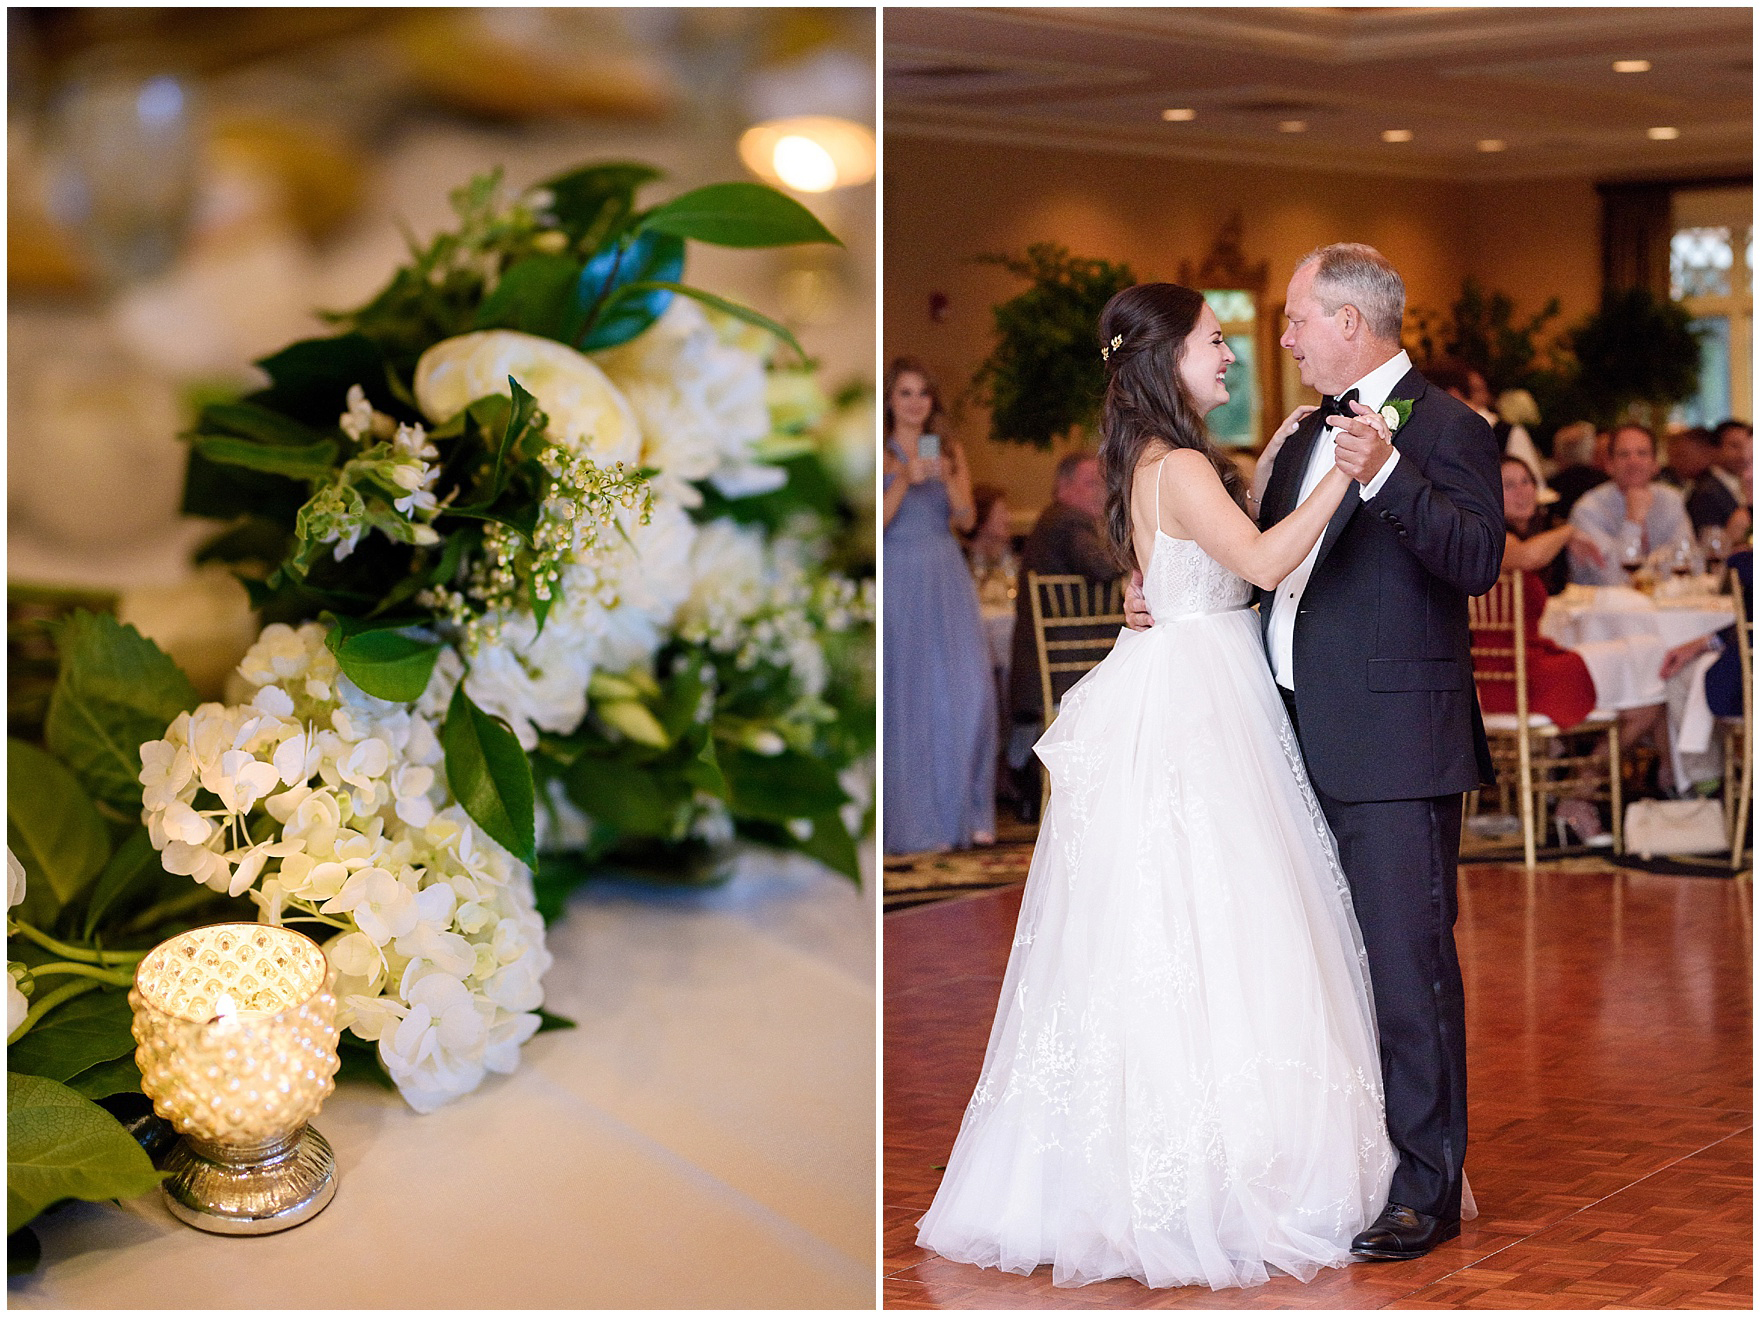 The bride dances with her father at a Butterfield Country Club wedding.